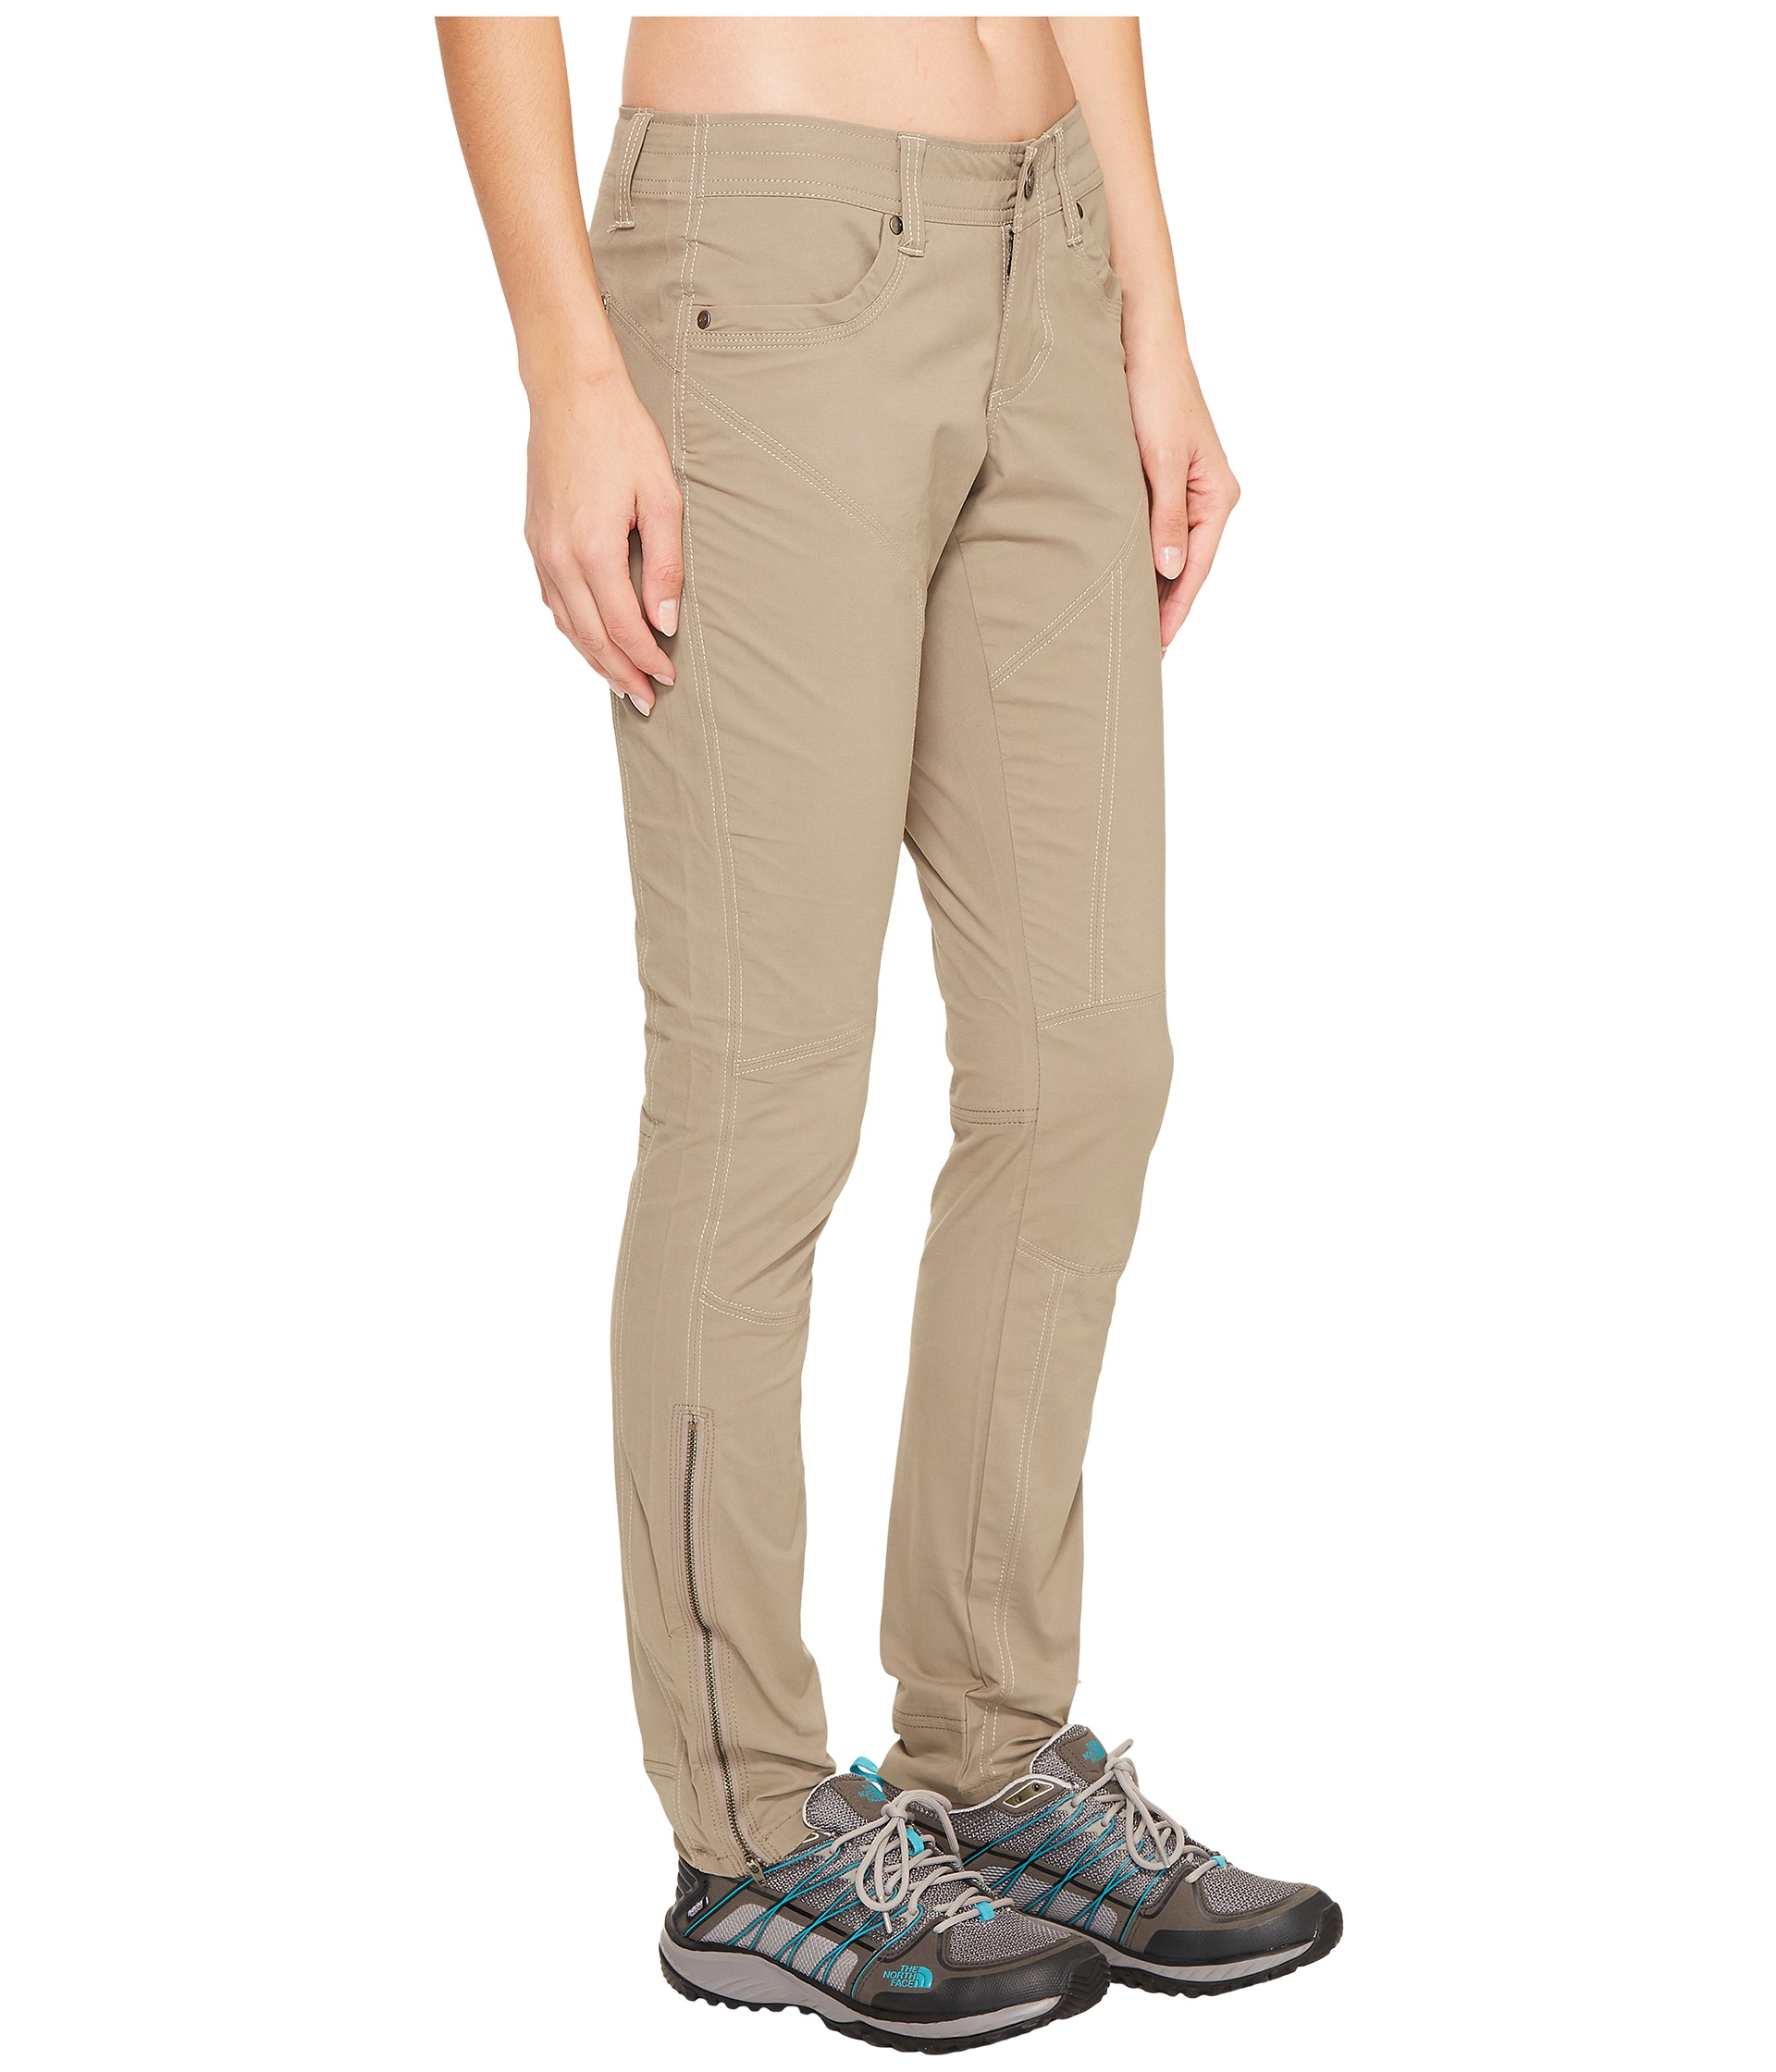 FEATURES. The KÜHL INSPIRATR ™ ANKLE ZIP PANT features ALPËNKLOTH ™ fabric for performance and style. For added strength and durability, the luxury stretch twill is stitched with the same nylon thread used in climbing harnesses.